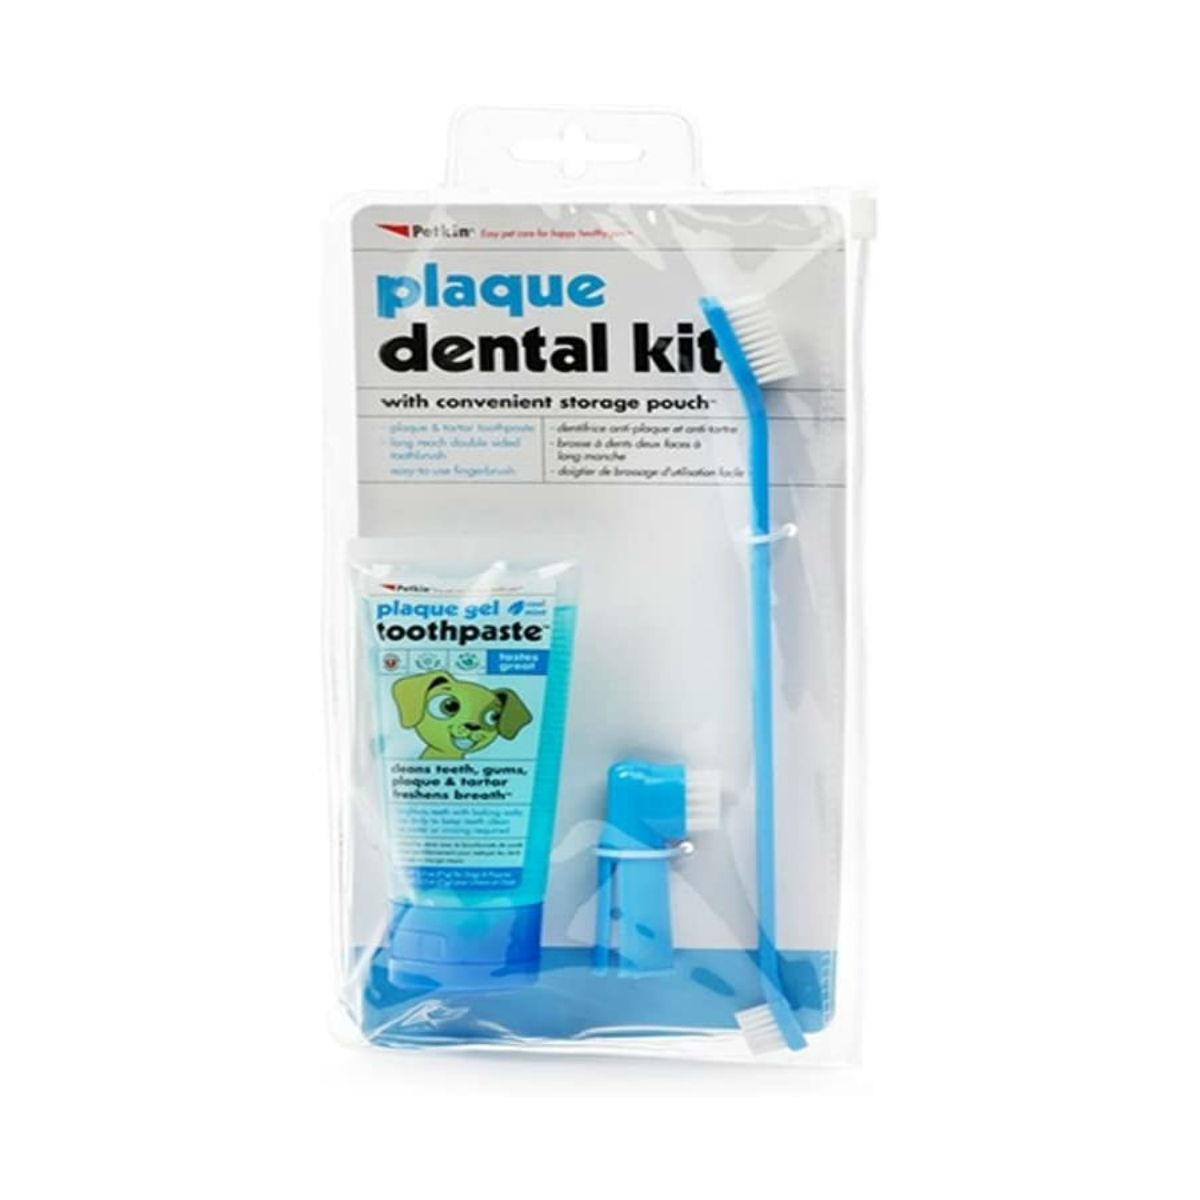 PetKin Plaque Dental Kit for Dogs - Mint